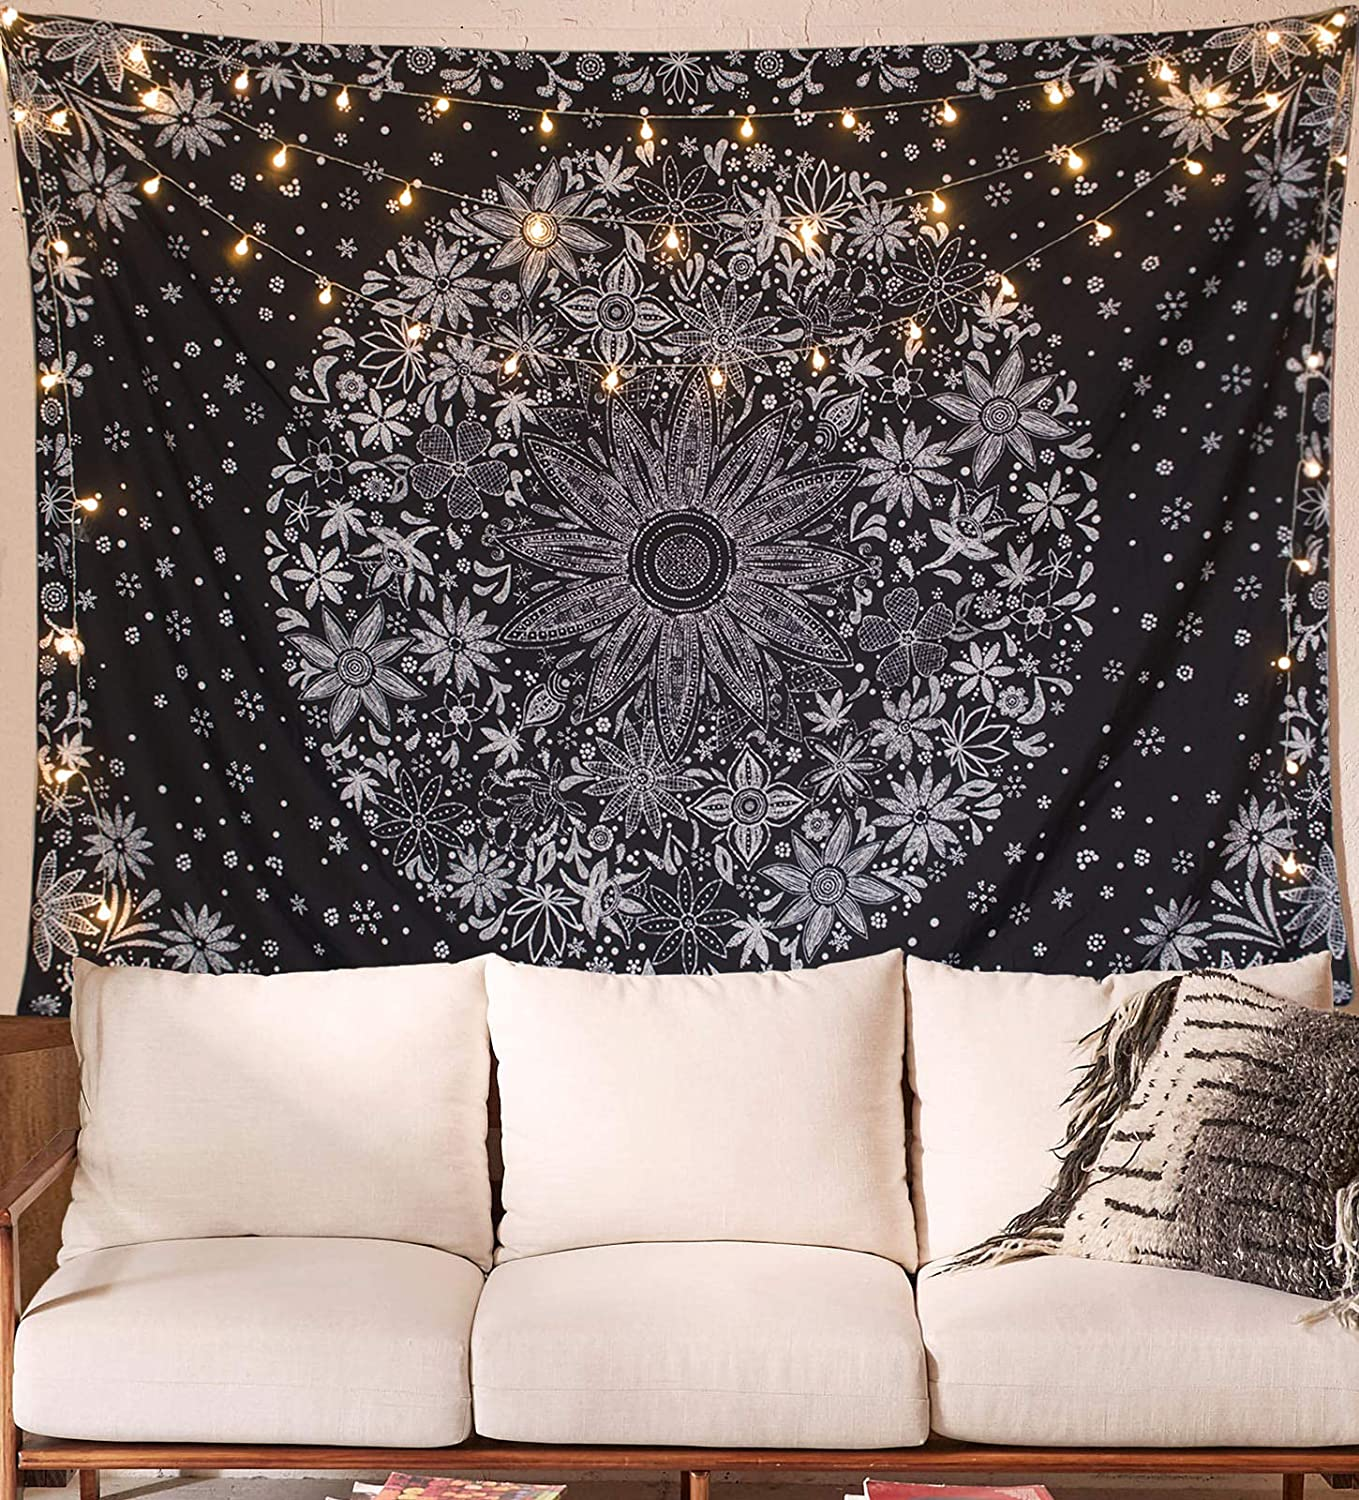 Neasow Bohemian Tapestry Wall Hanging,Black and White Floral Tapestry with Dotted Daisy Medallion Print Bedroom Boho Hippie Home Decor, 70×90 inches